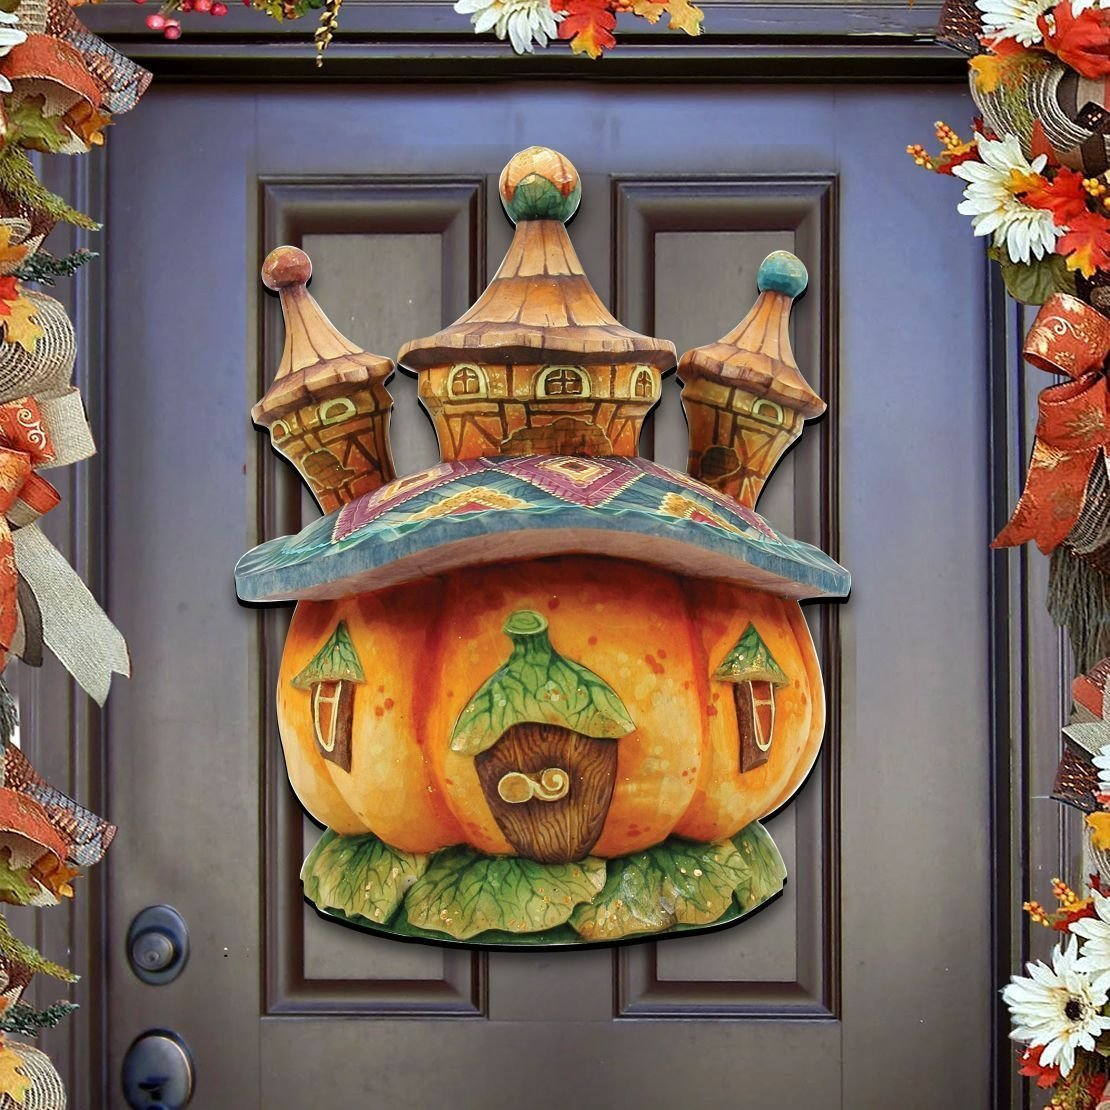 G.DeBrekht Halloween Pumpkin Castle Wooden Indoor and Outdoor Wooden Fall Halloween Hanging Door Decorations and Wall Sign, For Home, School, Office, Haunted House Decor, Party Decorations #8158413H